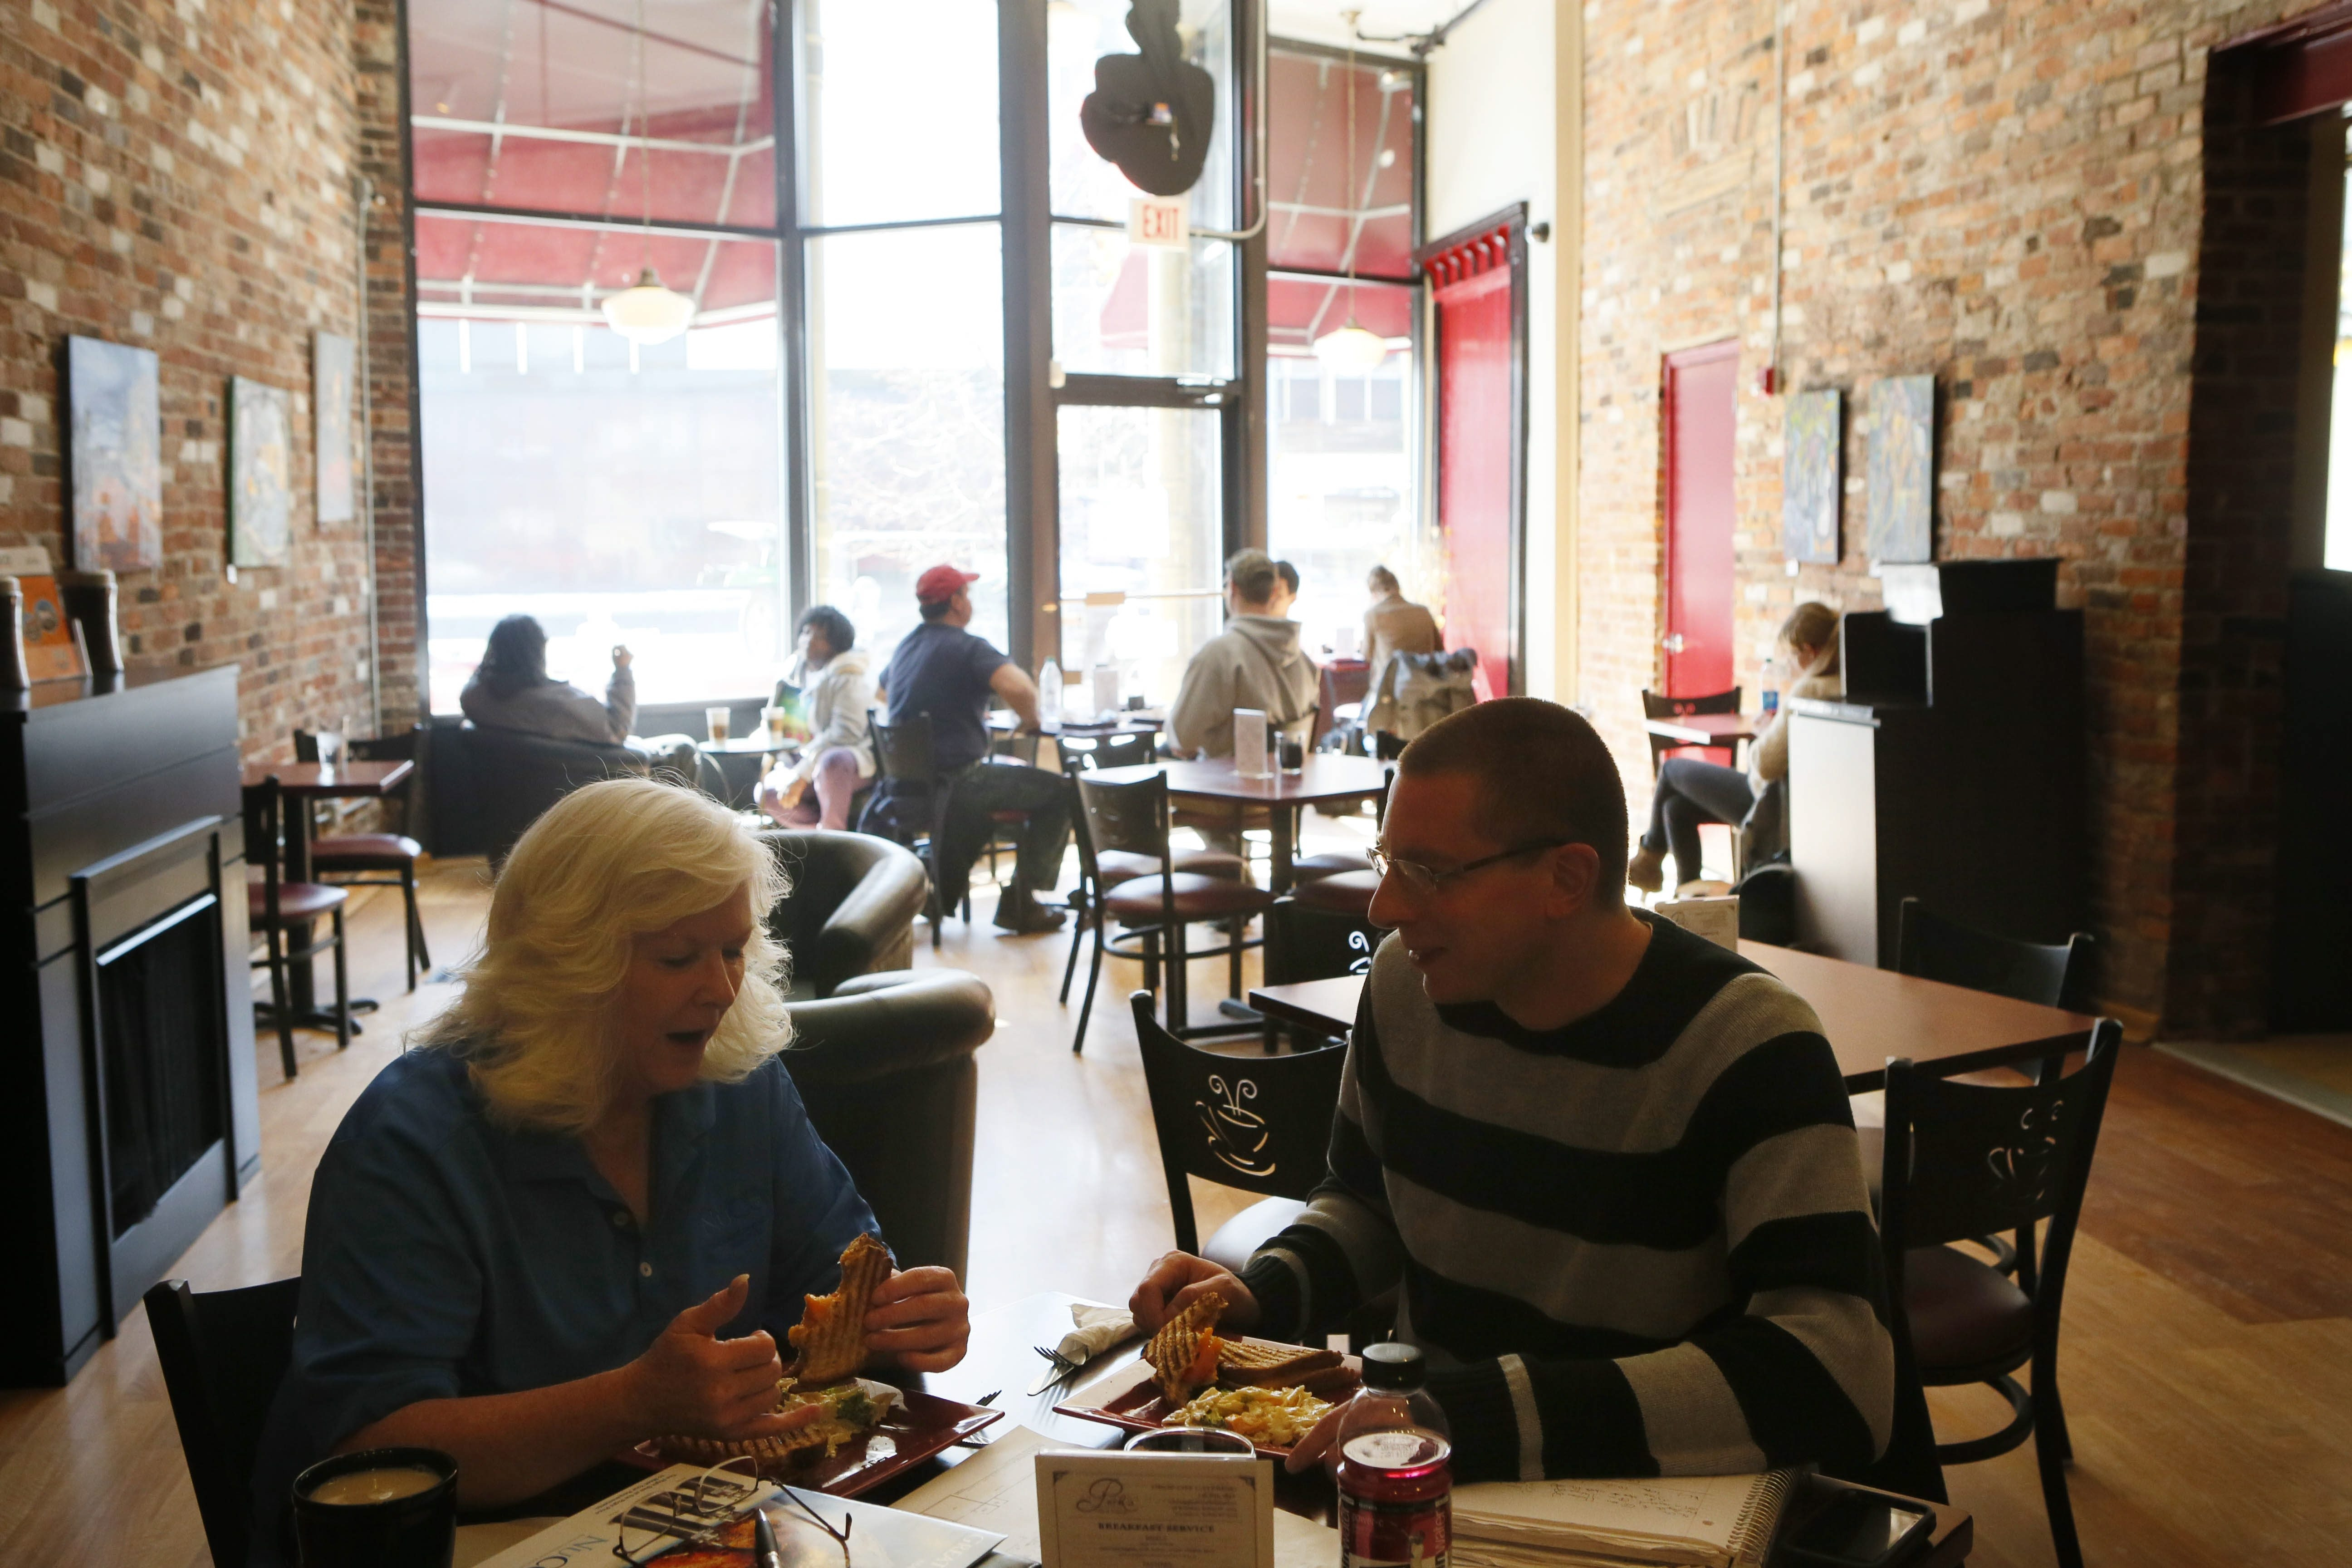 Perk's Café on Broadway is the perfect lunch spot for busy downtown workers.